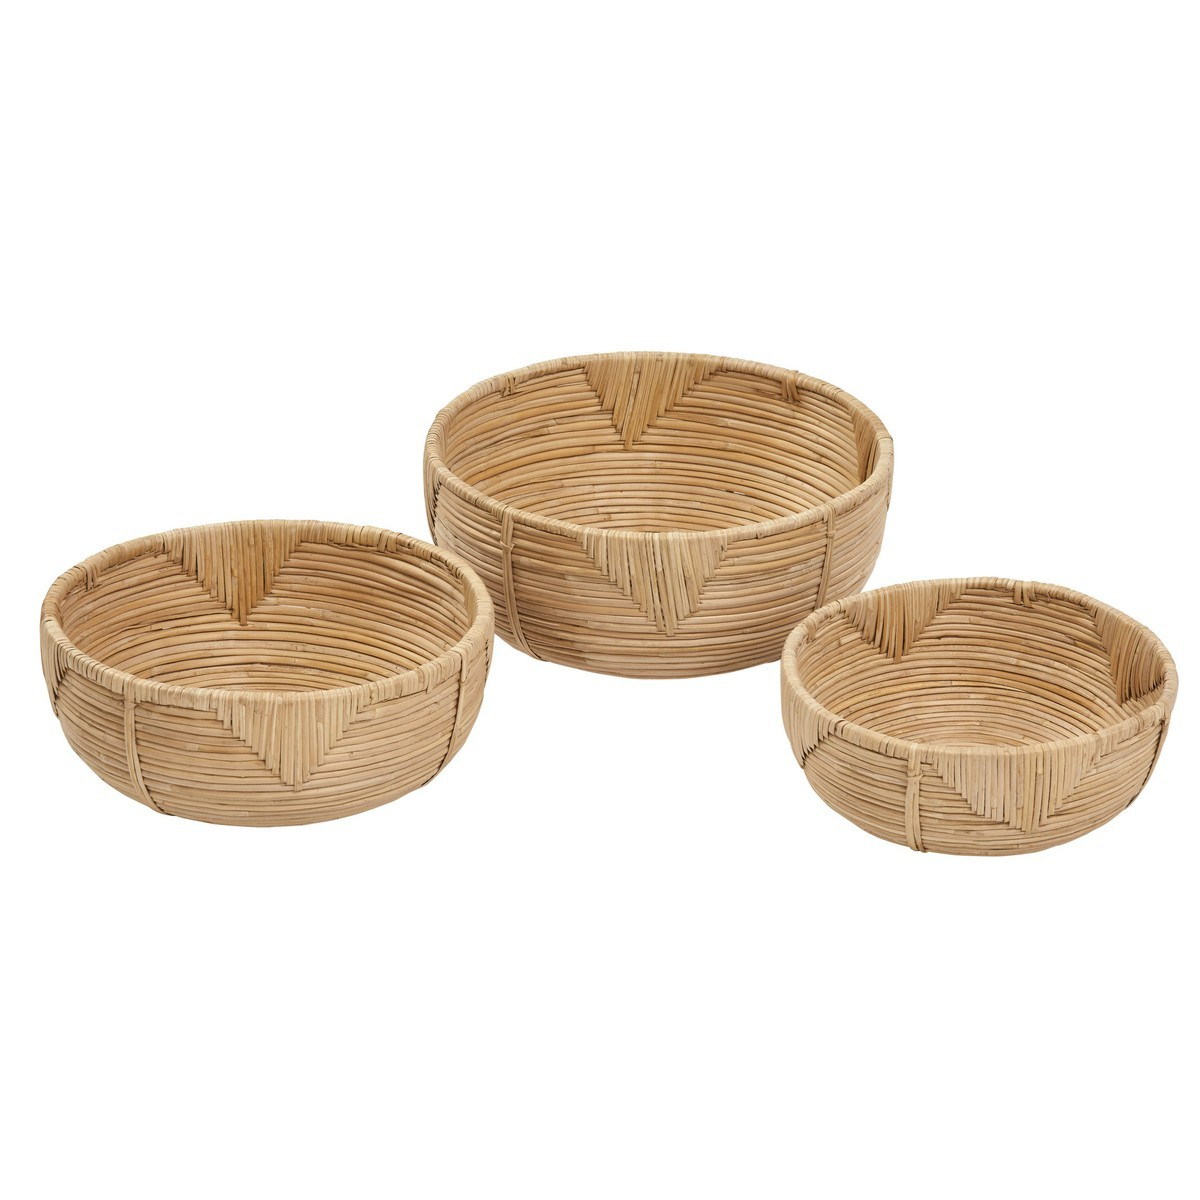 Fairley 3 Piece Cane Bowl Set